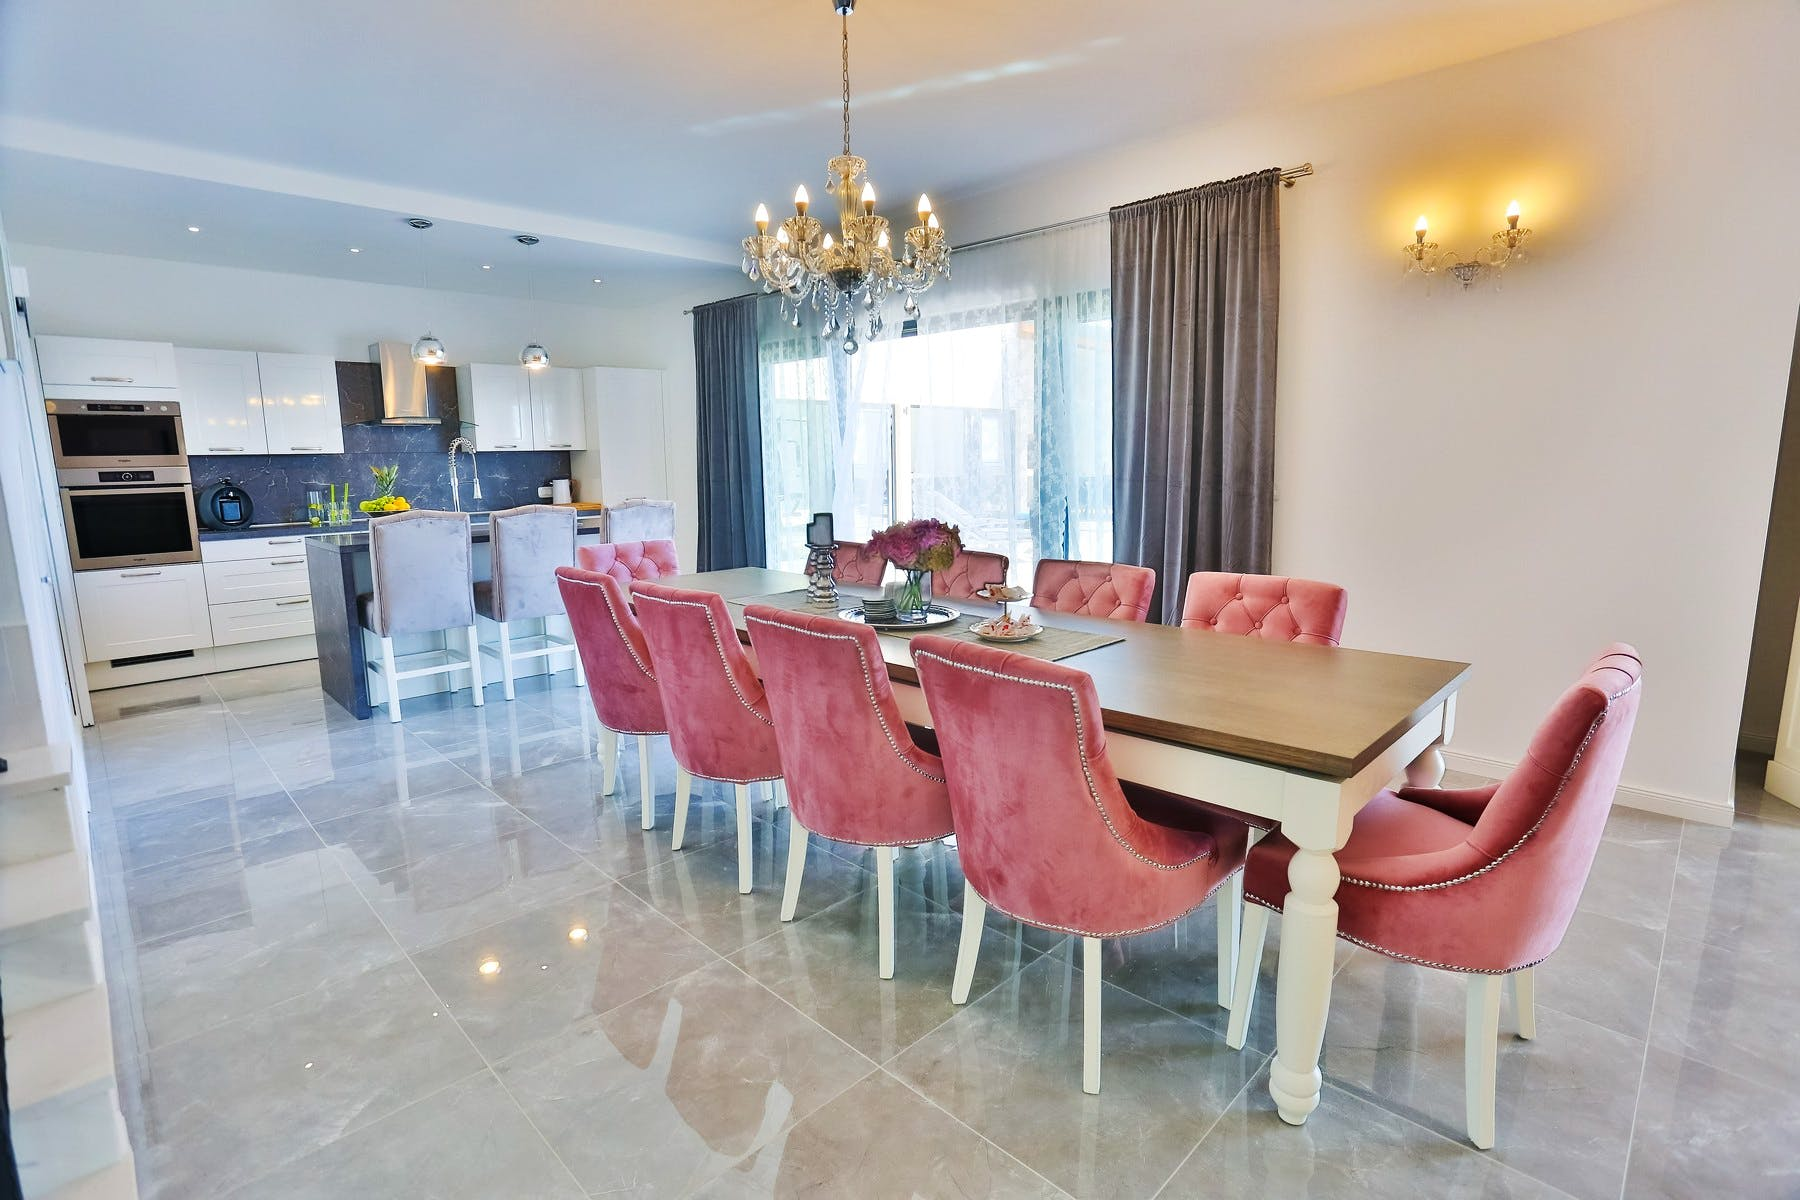 Fully fitted modern kitchen and dining area